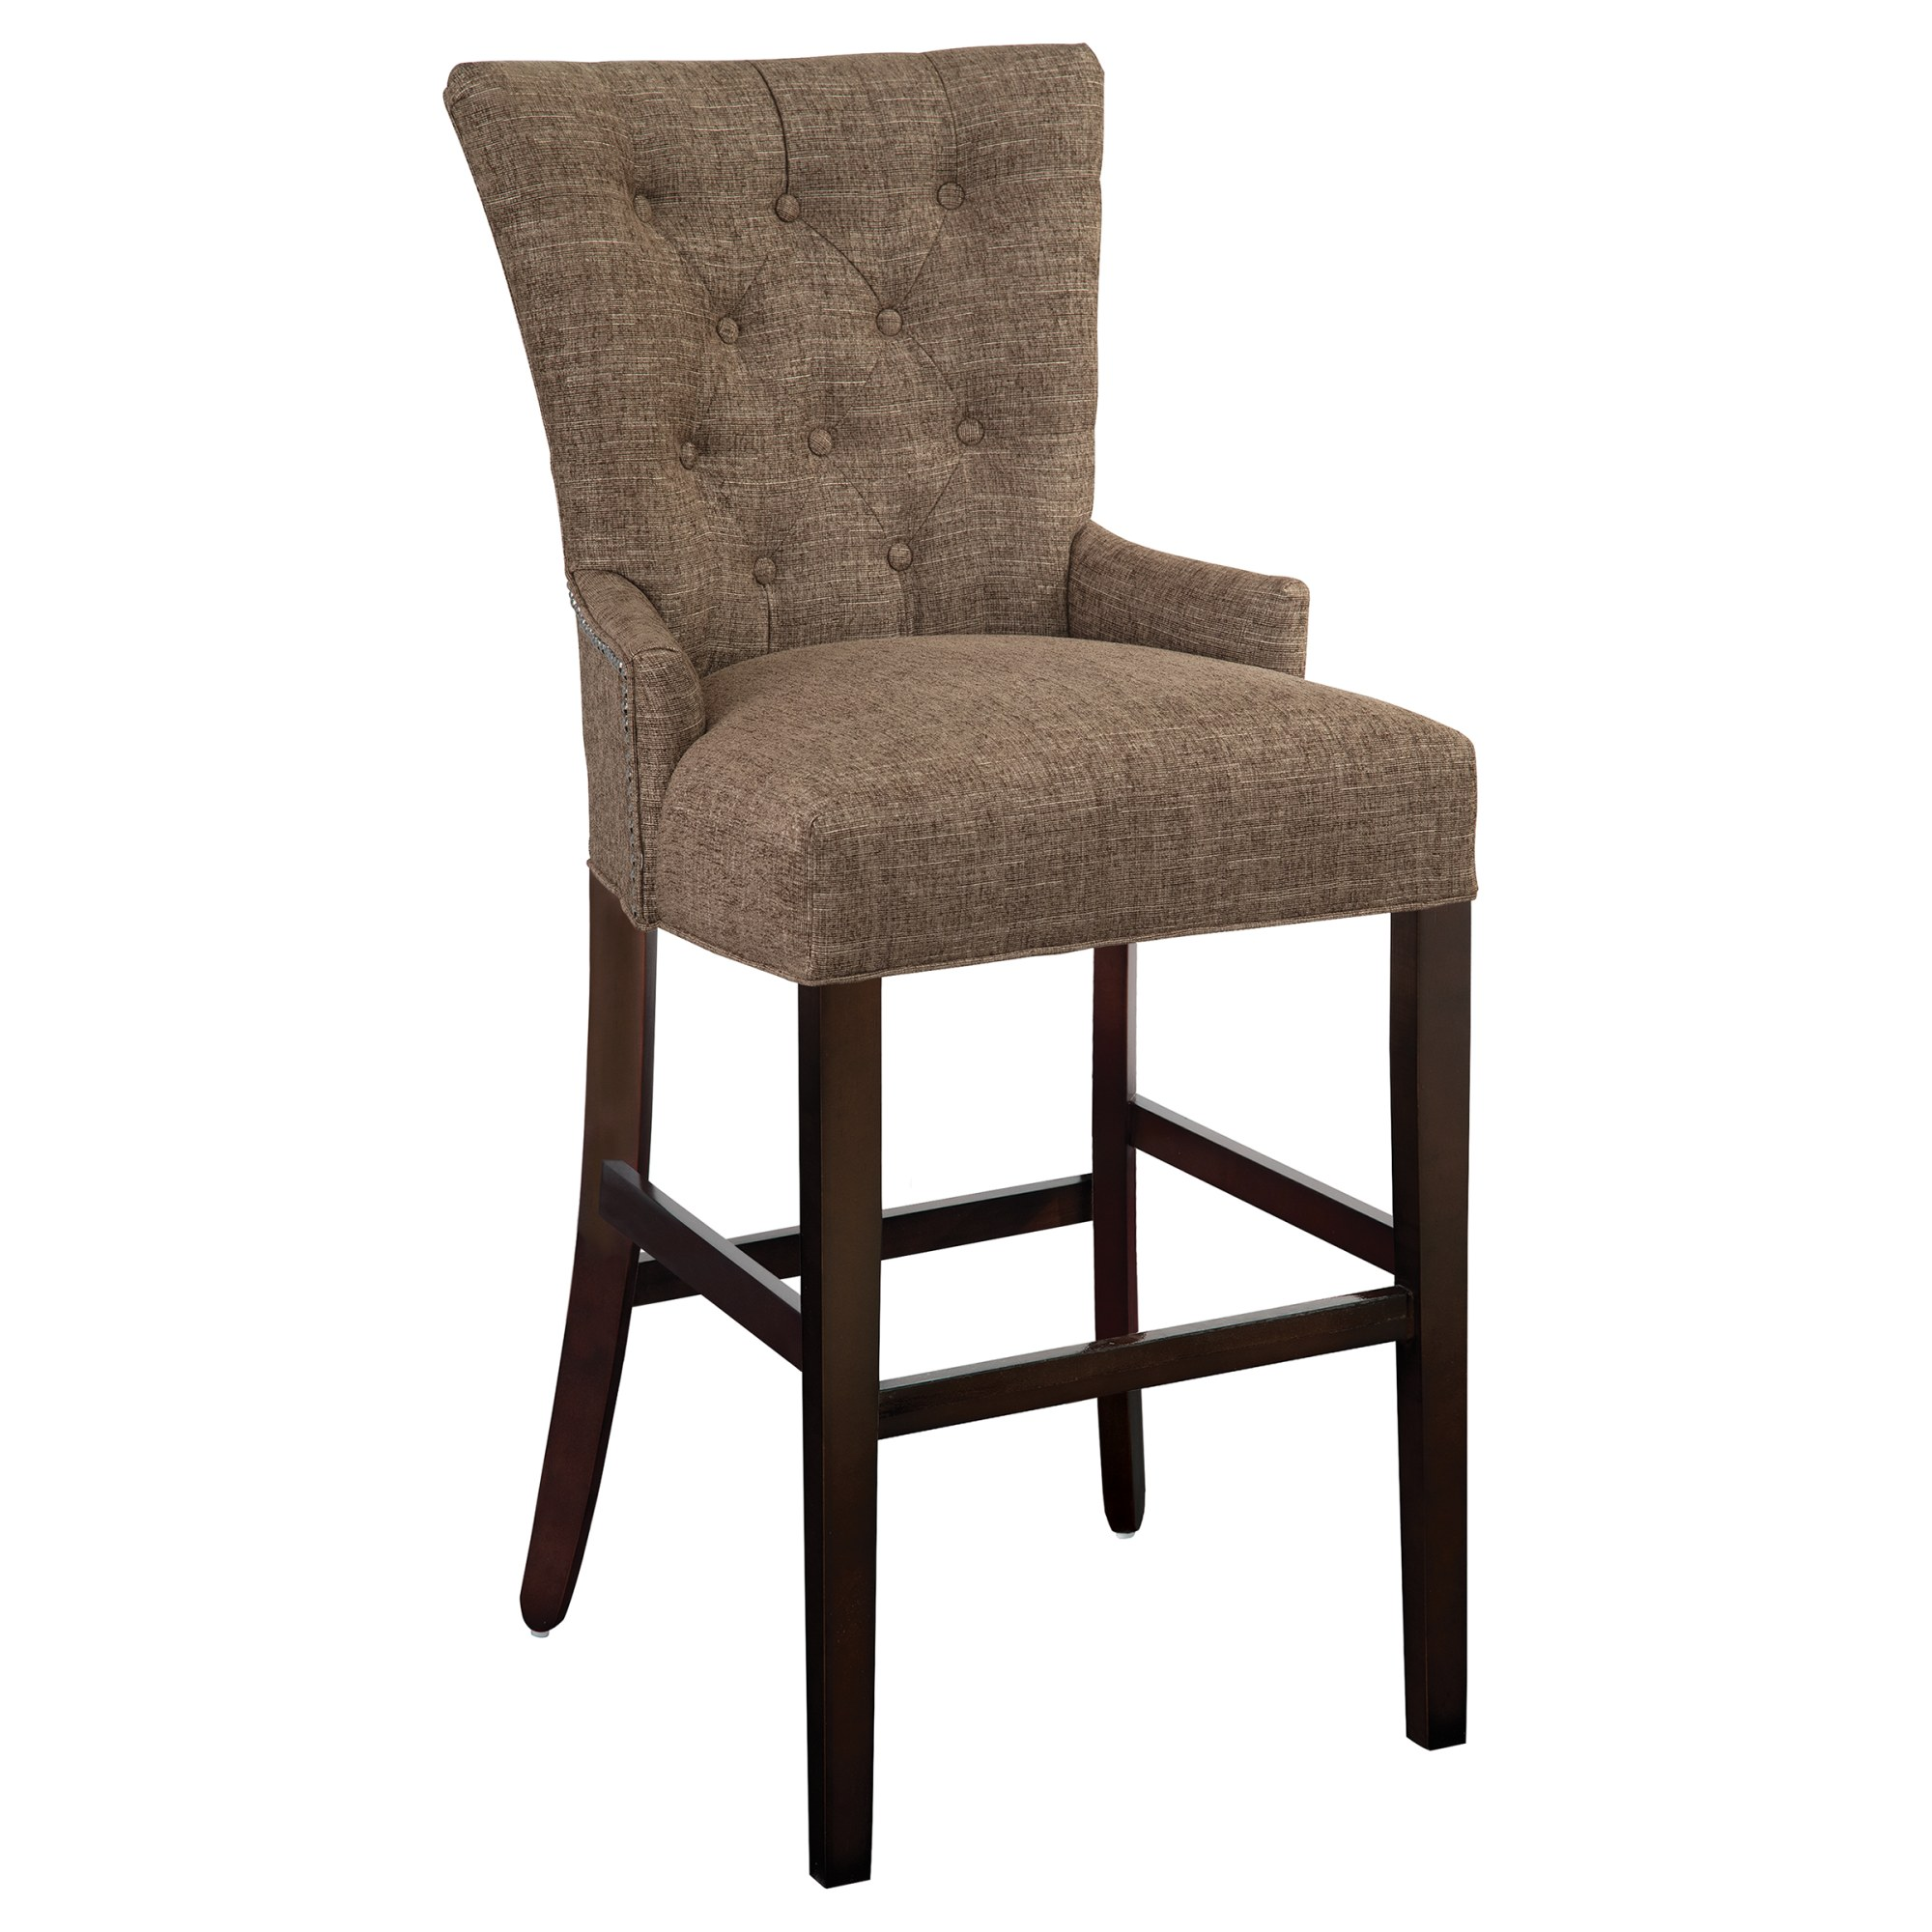 Image for 7401 Sonya Bar Stool with Nailheads from Hekman Official Website